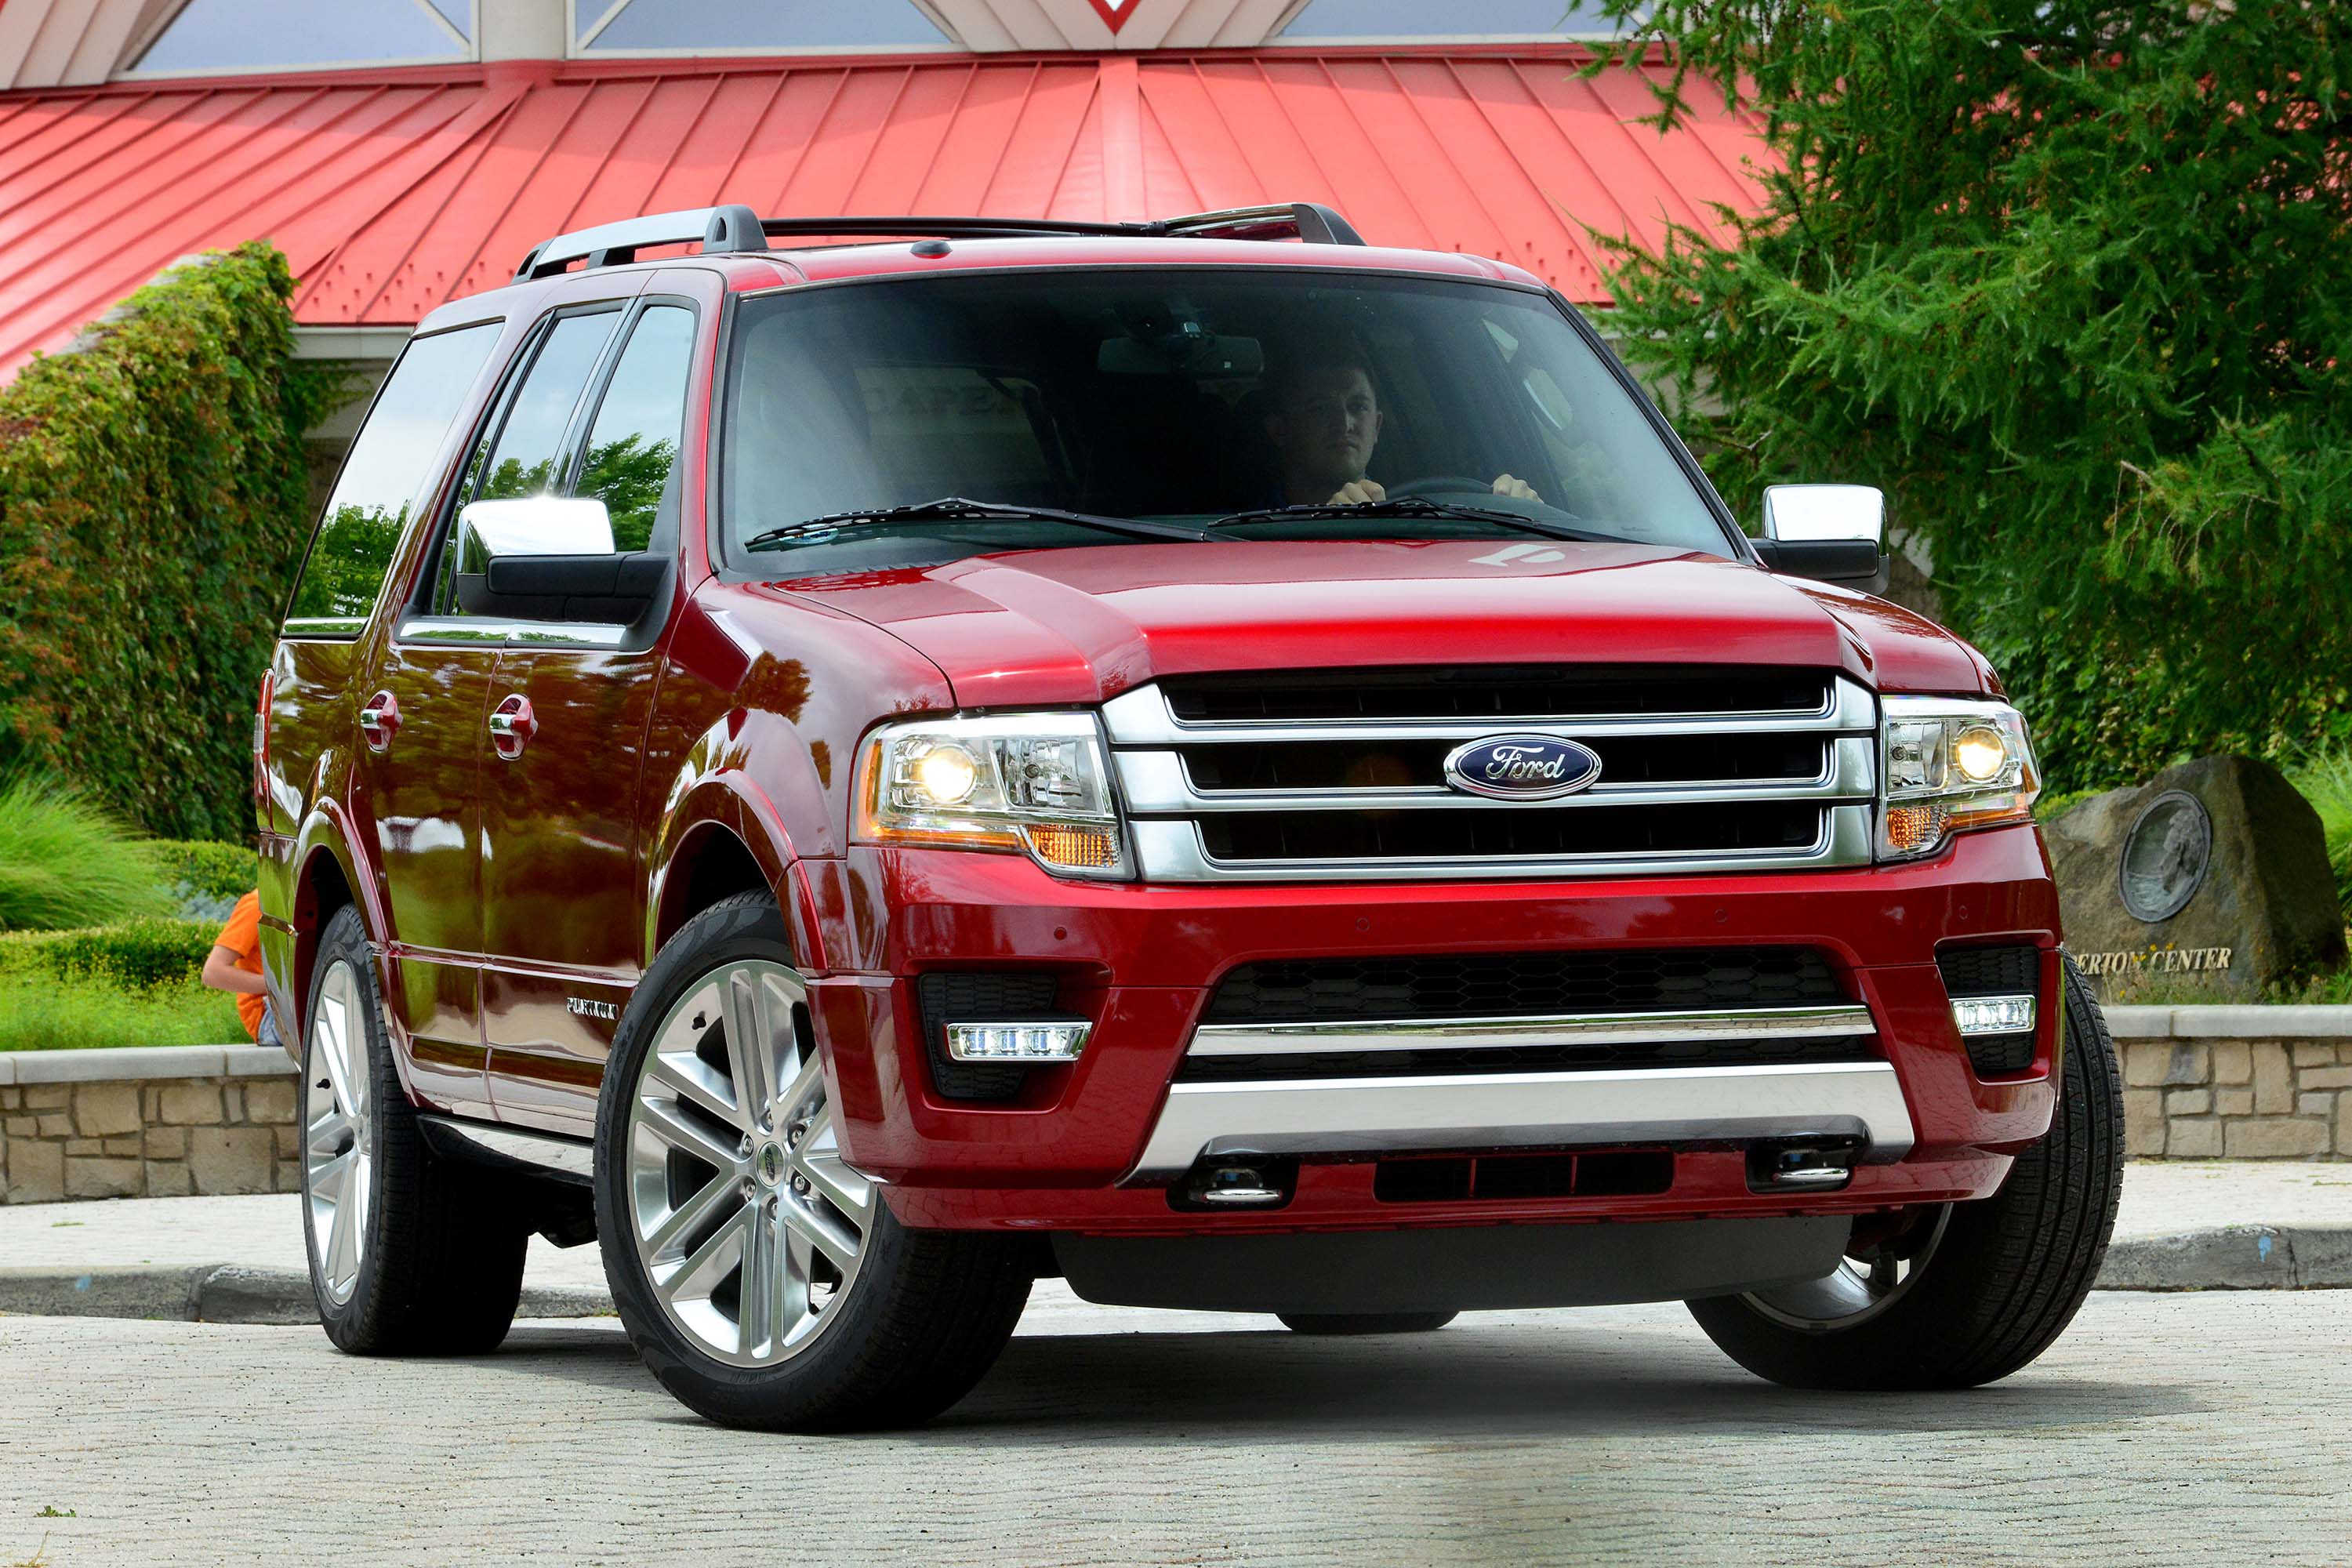 2018 Ford Expedition Vs 2017 Expedition U553 And U324